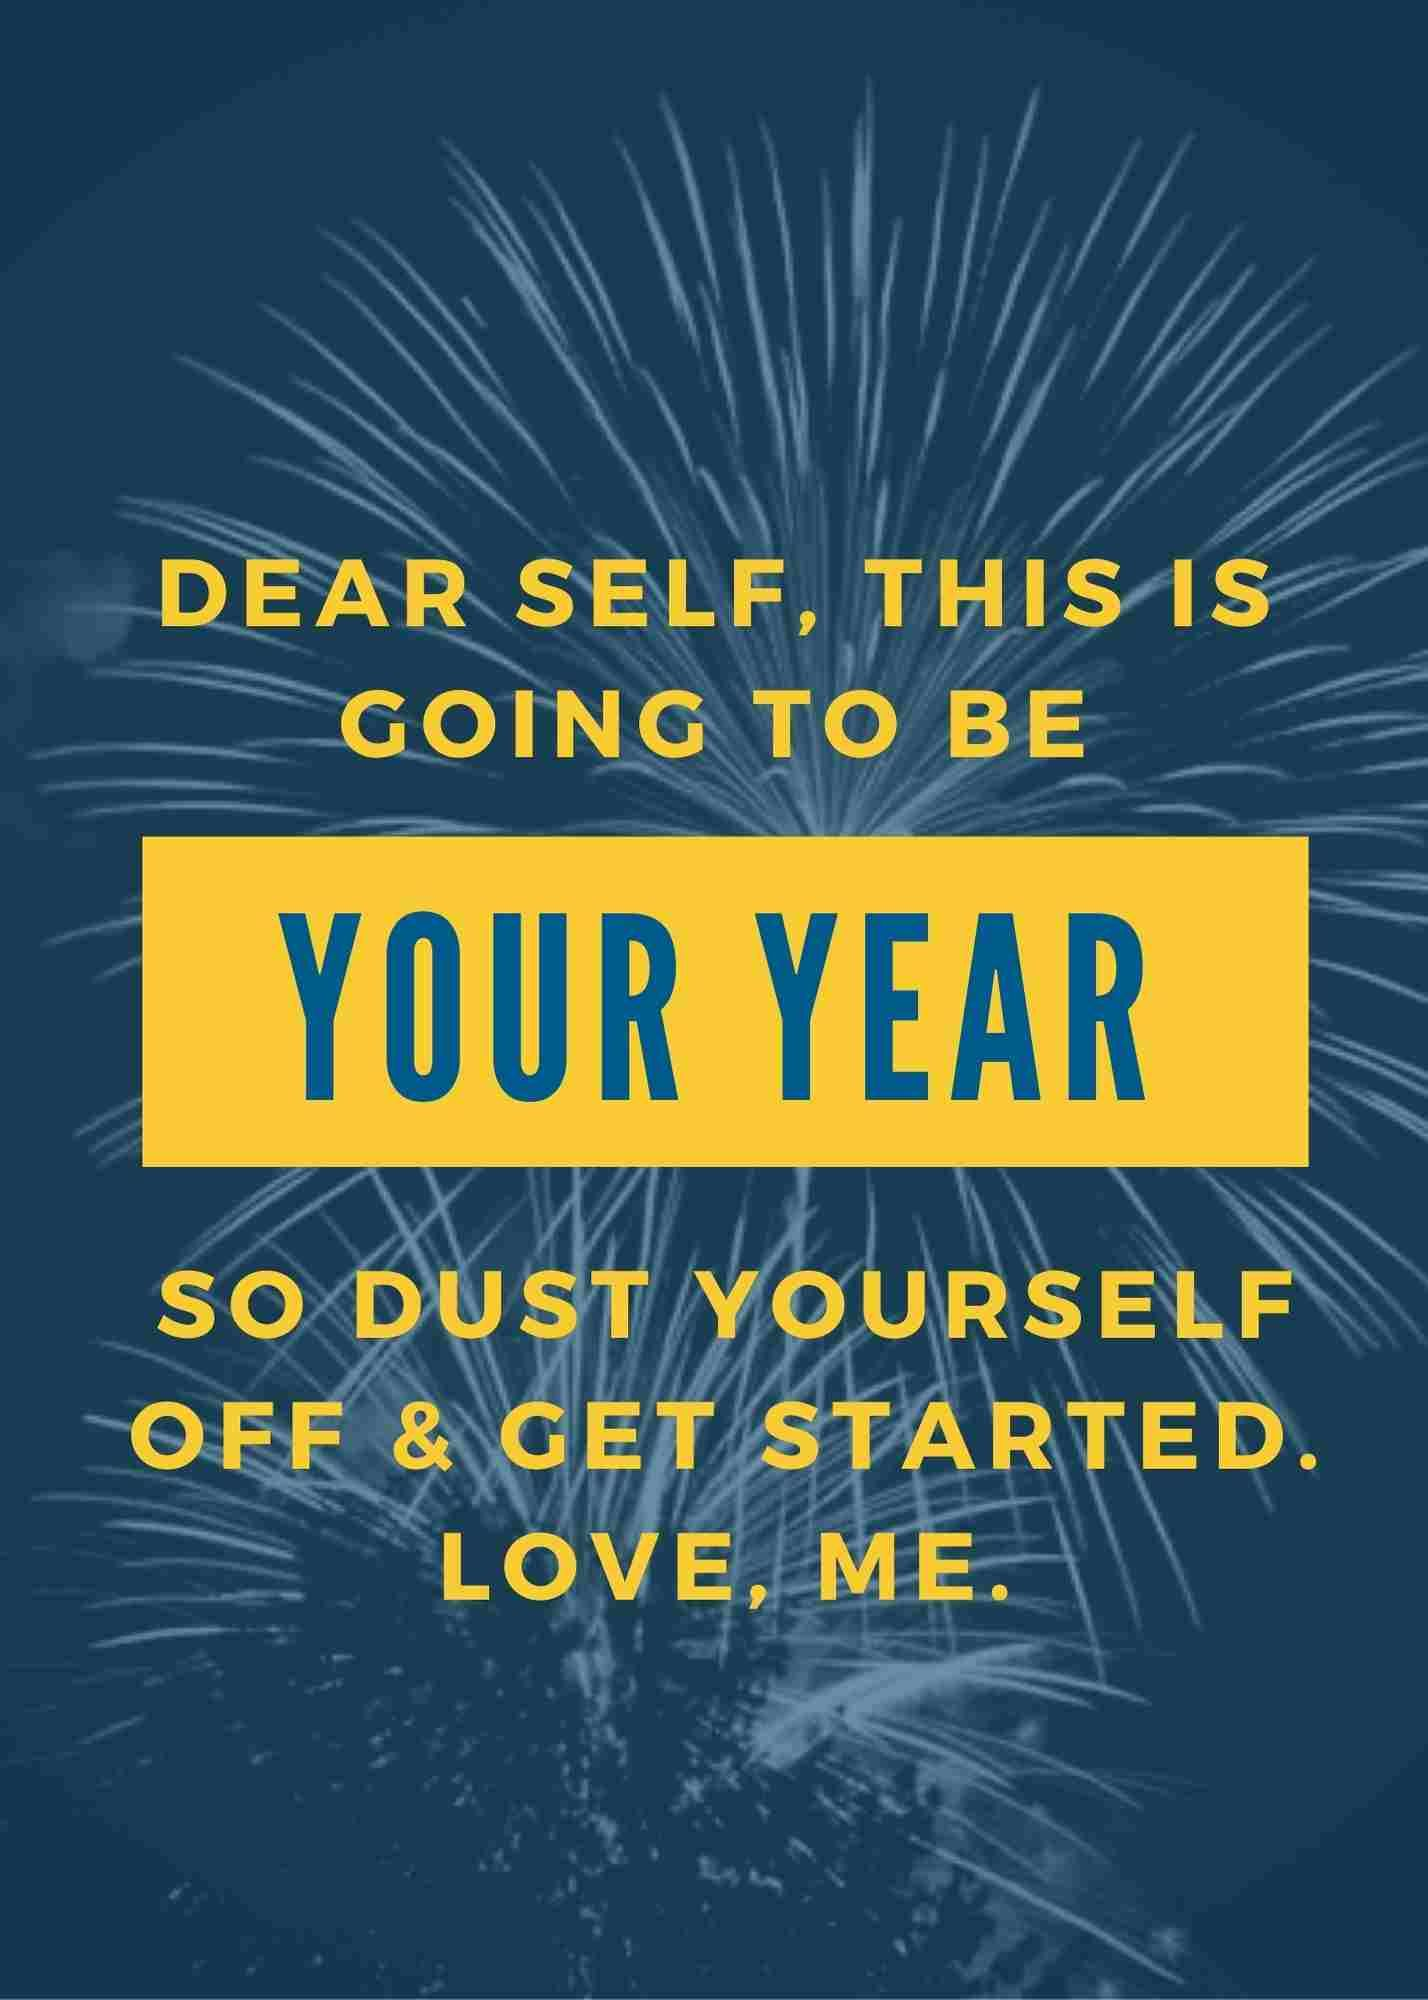 May your coming year quotes for your friends and family.